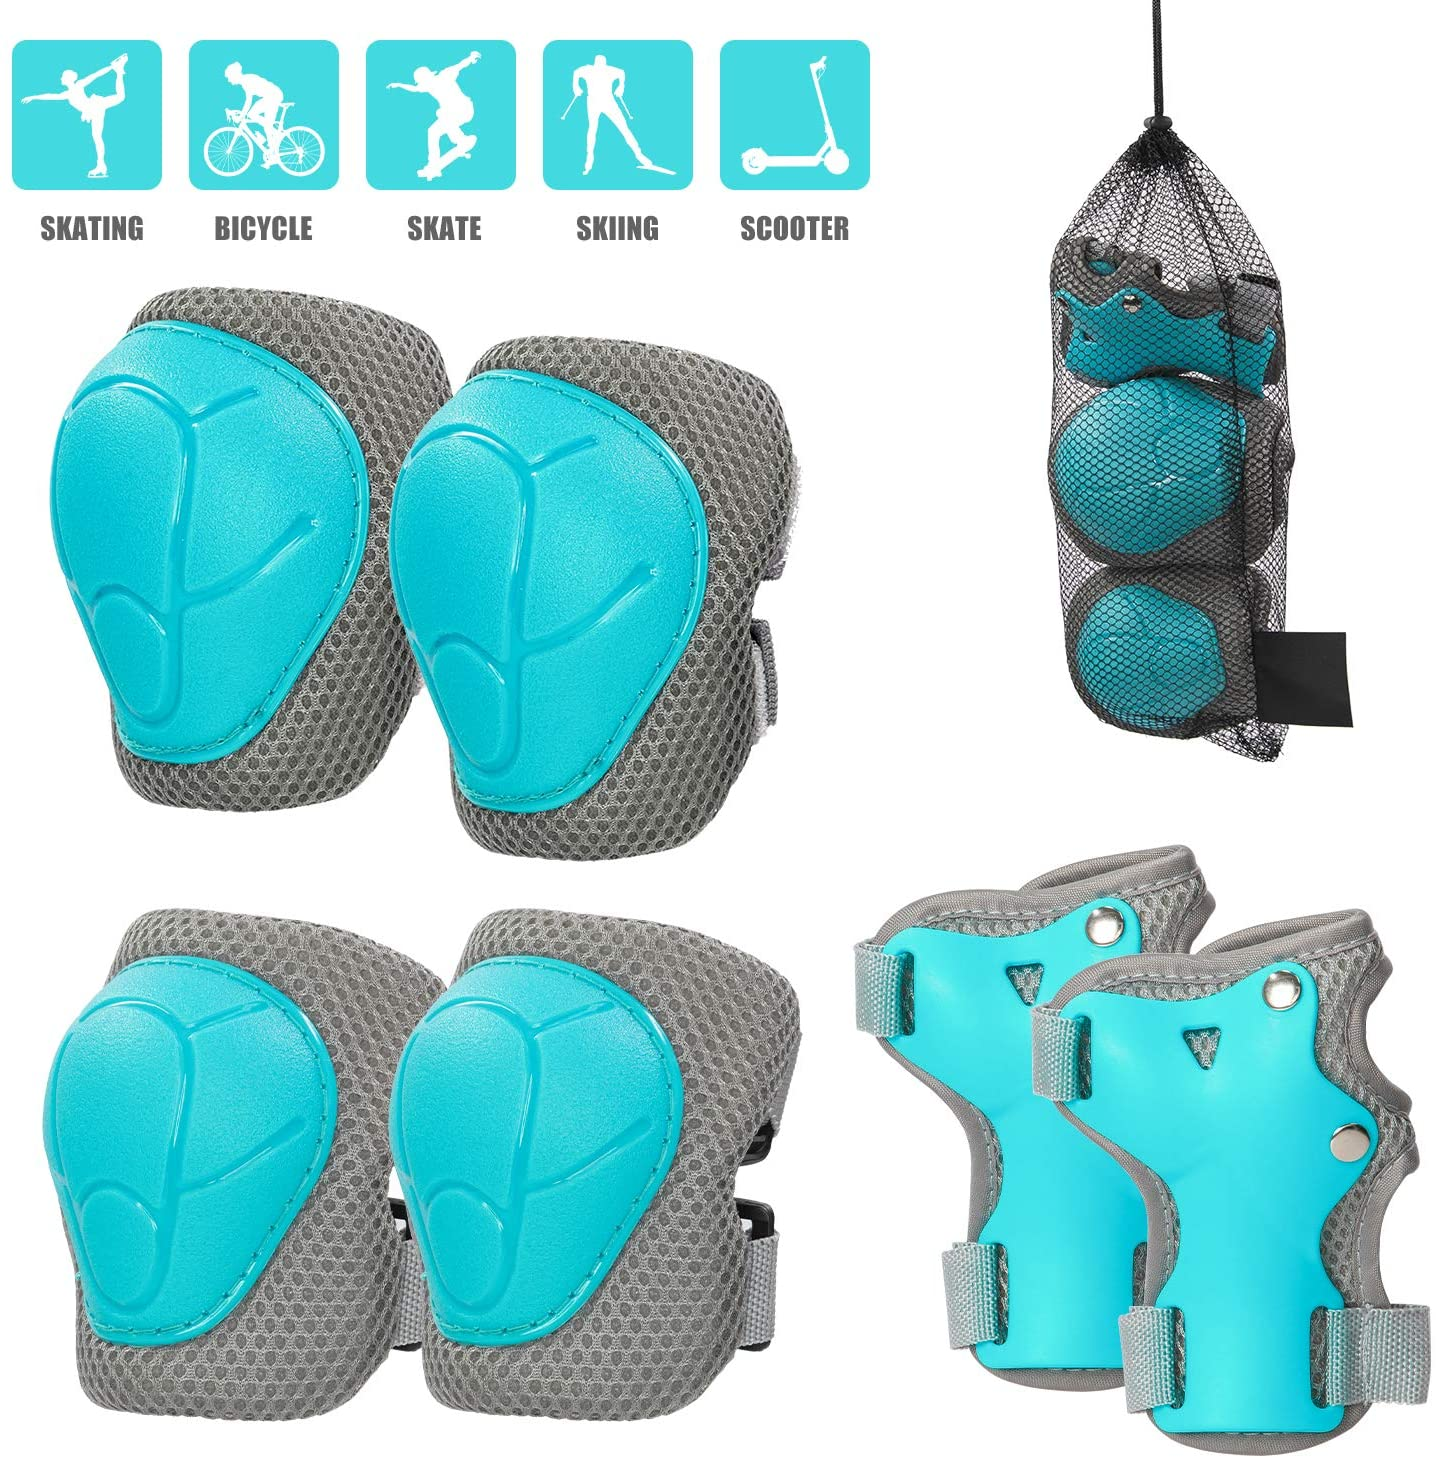 LANOVAGEAR Knee Elbow Wrist Pads for Kids 3-8 Years Adjustable Toddler to Youth Protective Gear Set for Bike Skateboarding Scooter Riding Skating and More